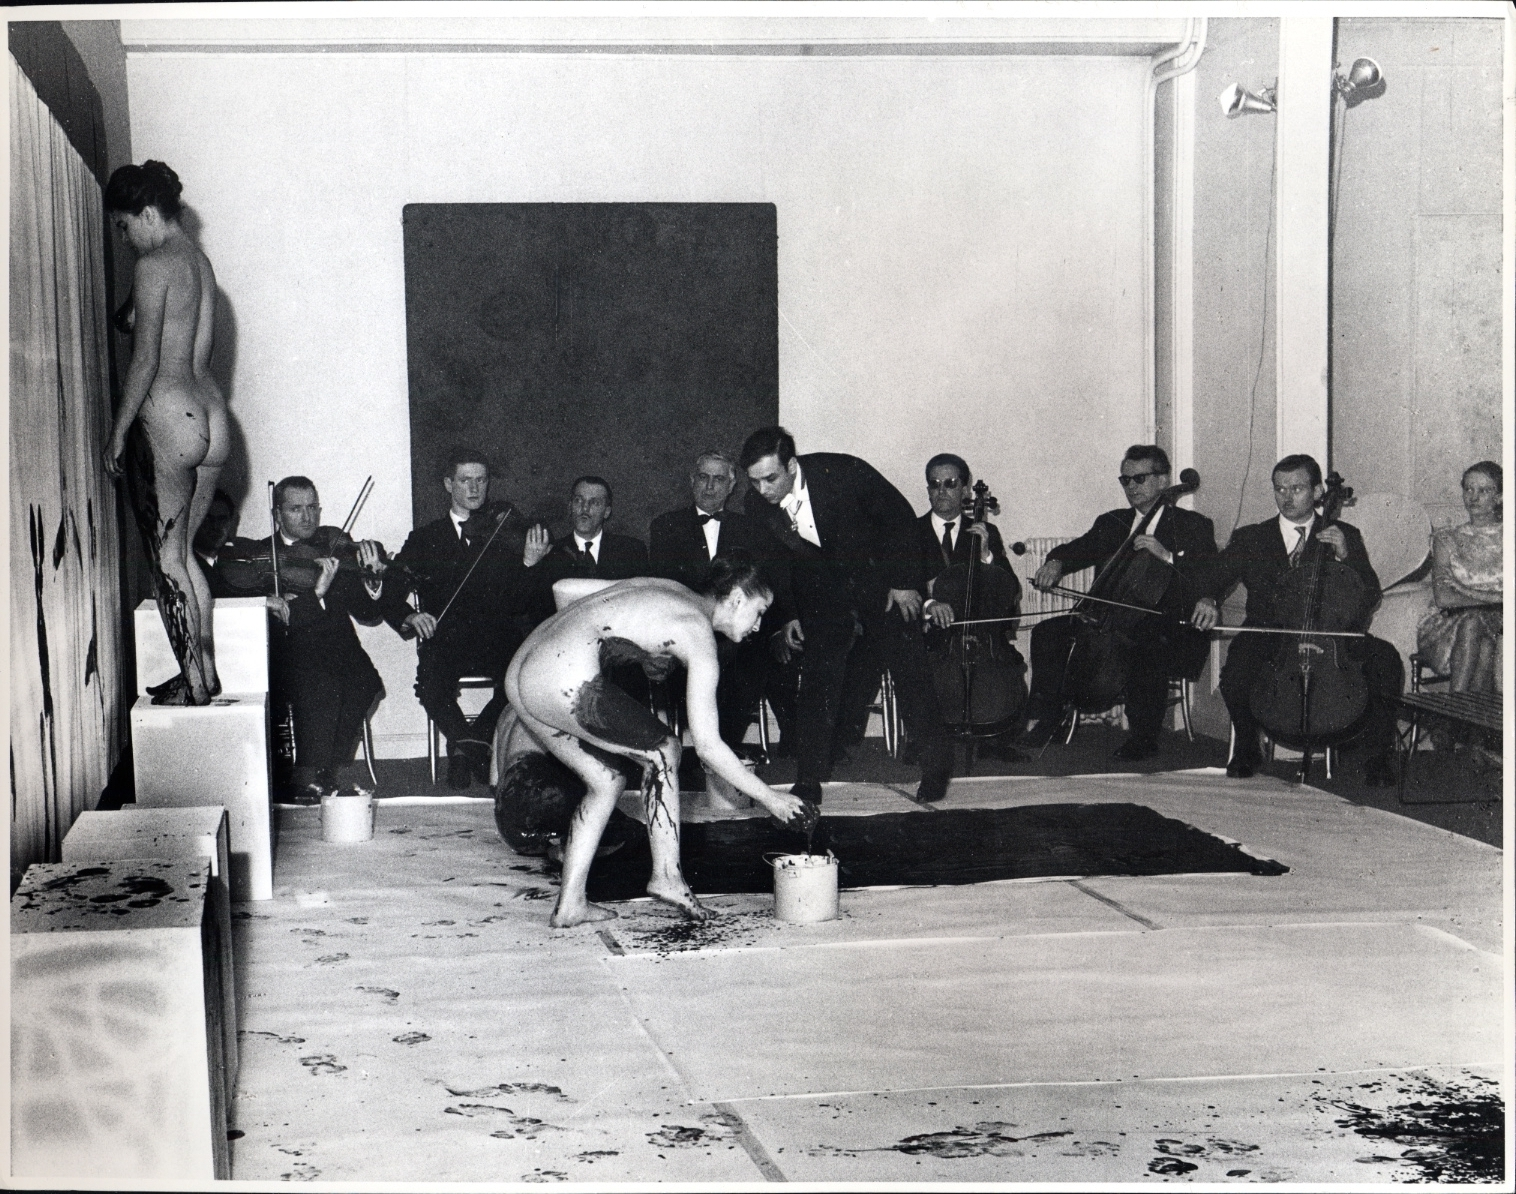 Performance by Yves Klein, 1961